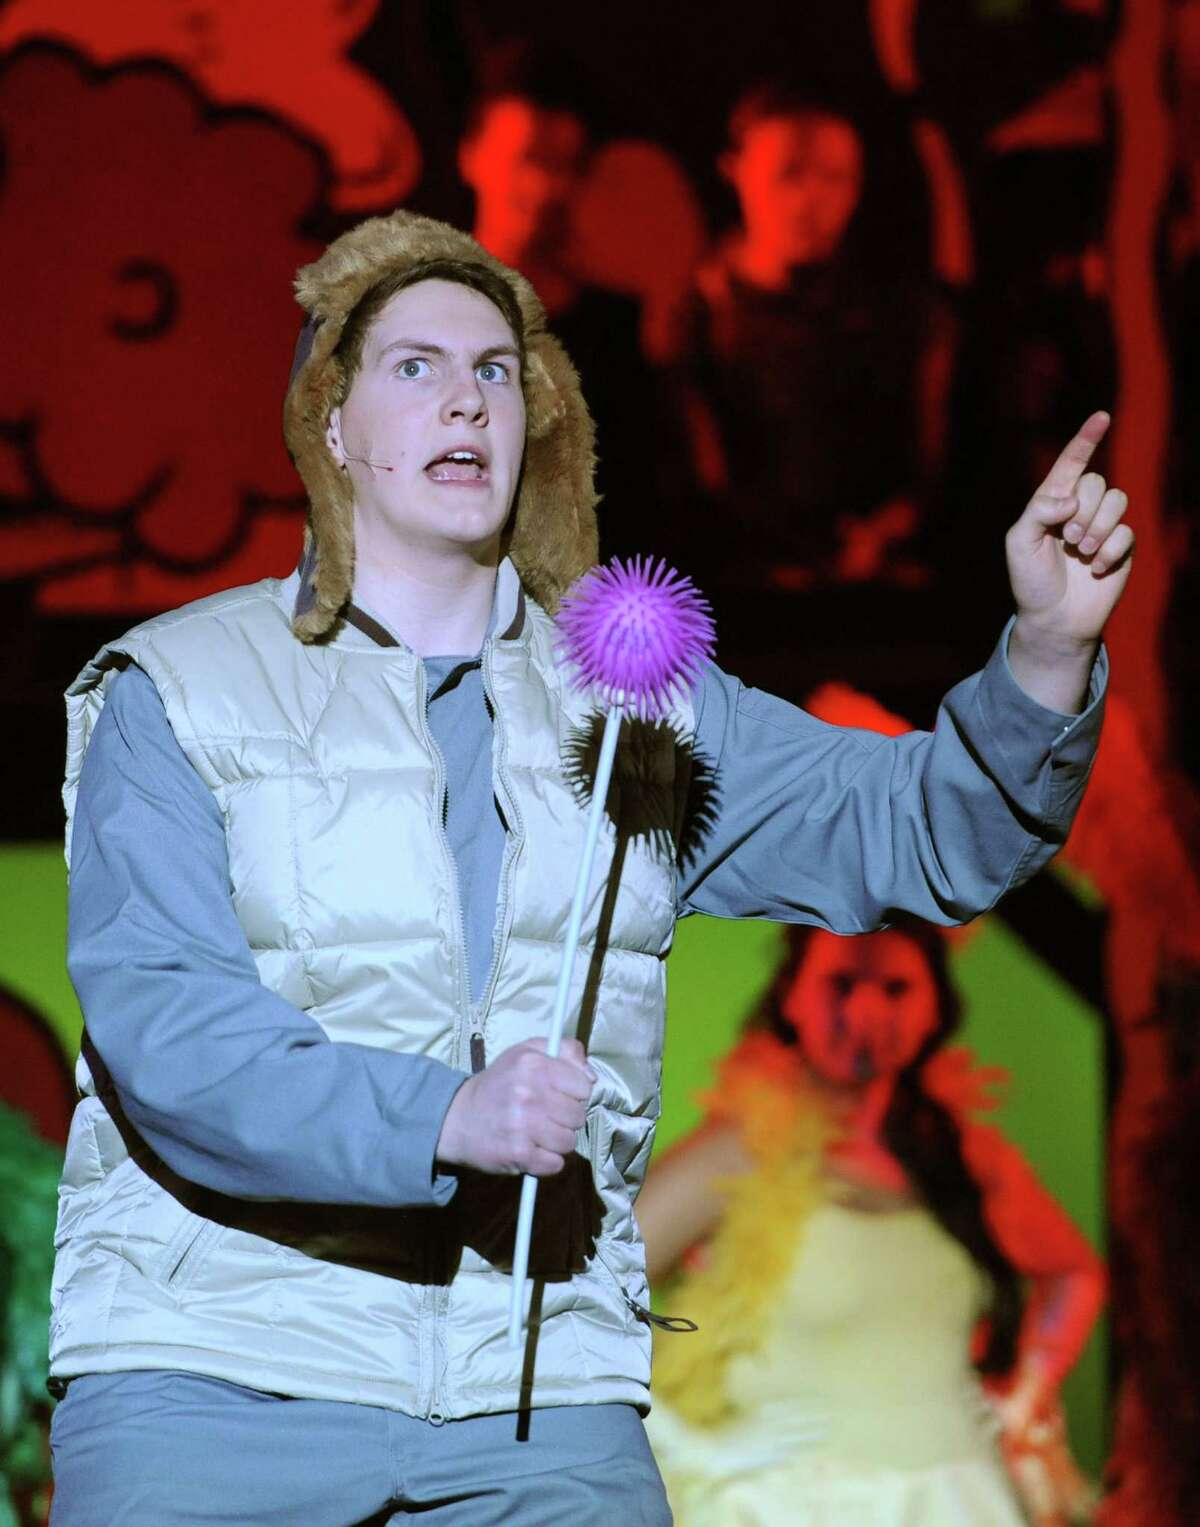 """Kyle Watkins, playing Horton the elephant, acts out a scene during the dress rehearsal of the 1214 Foundation's """"Seussical"""" at Newtown High School on Aug. 7, 2013. (File photo)"""